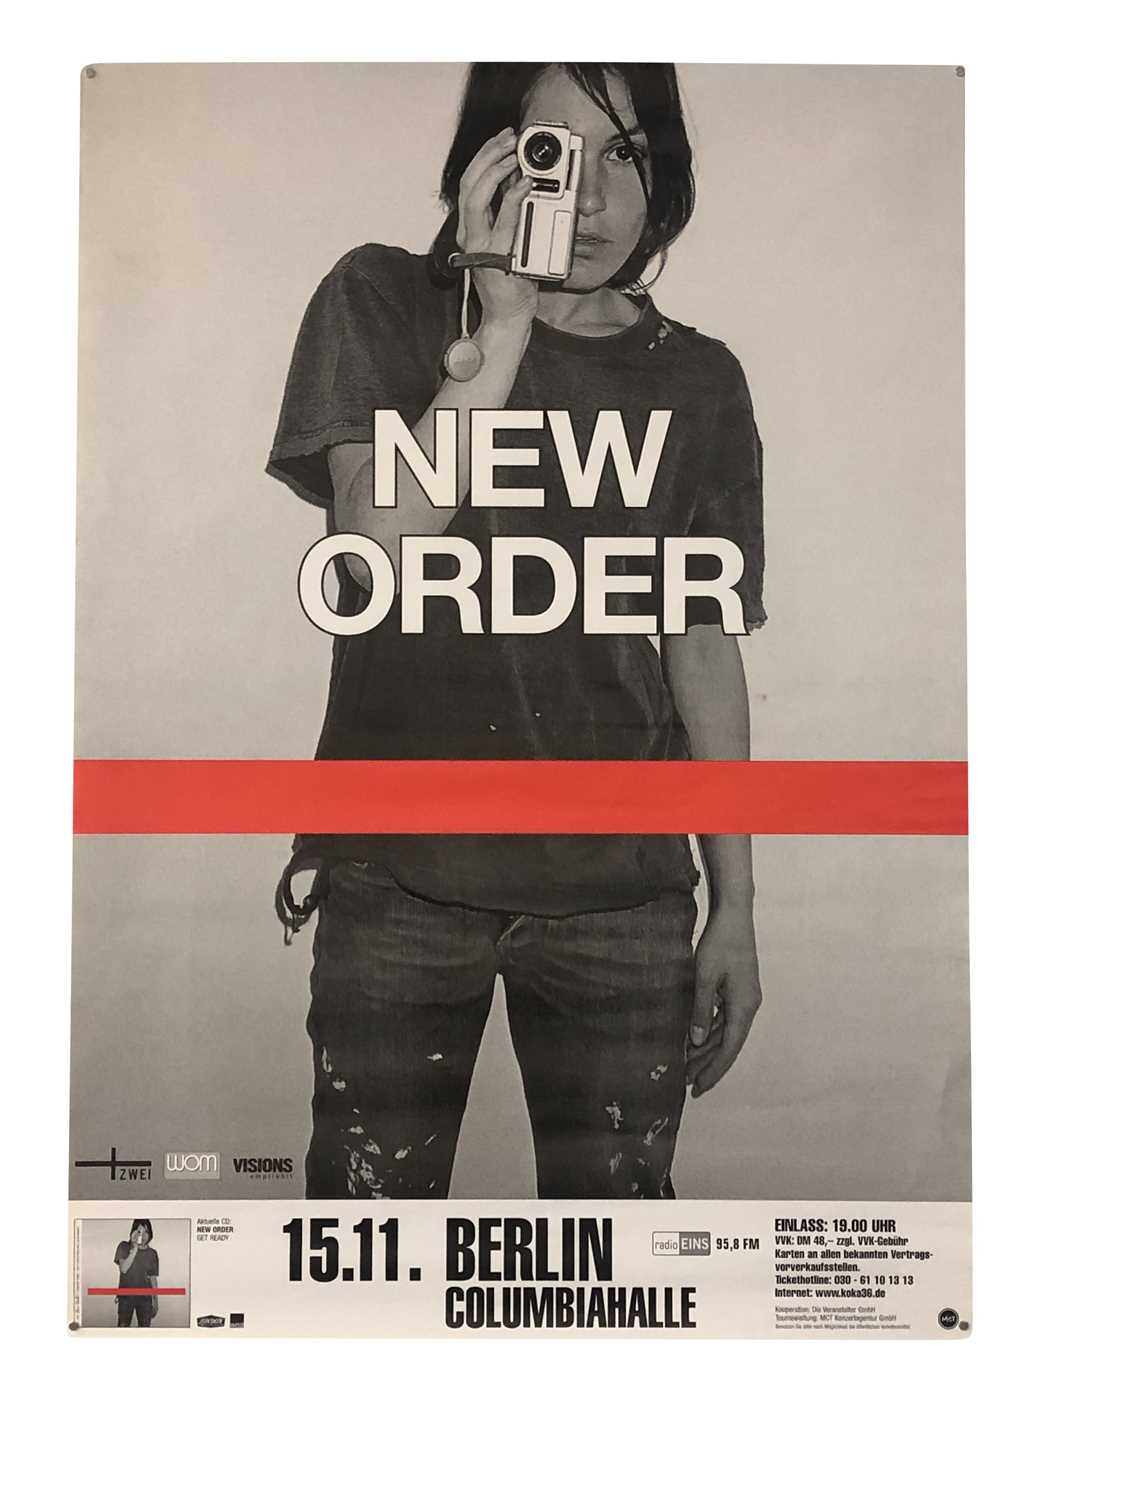 NEW ORDER PROMO & GIG POSTERS COLLECTION - Image 7 of 7